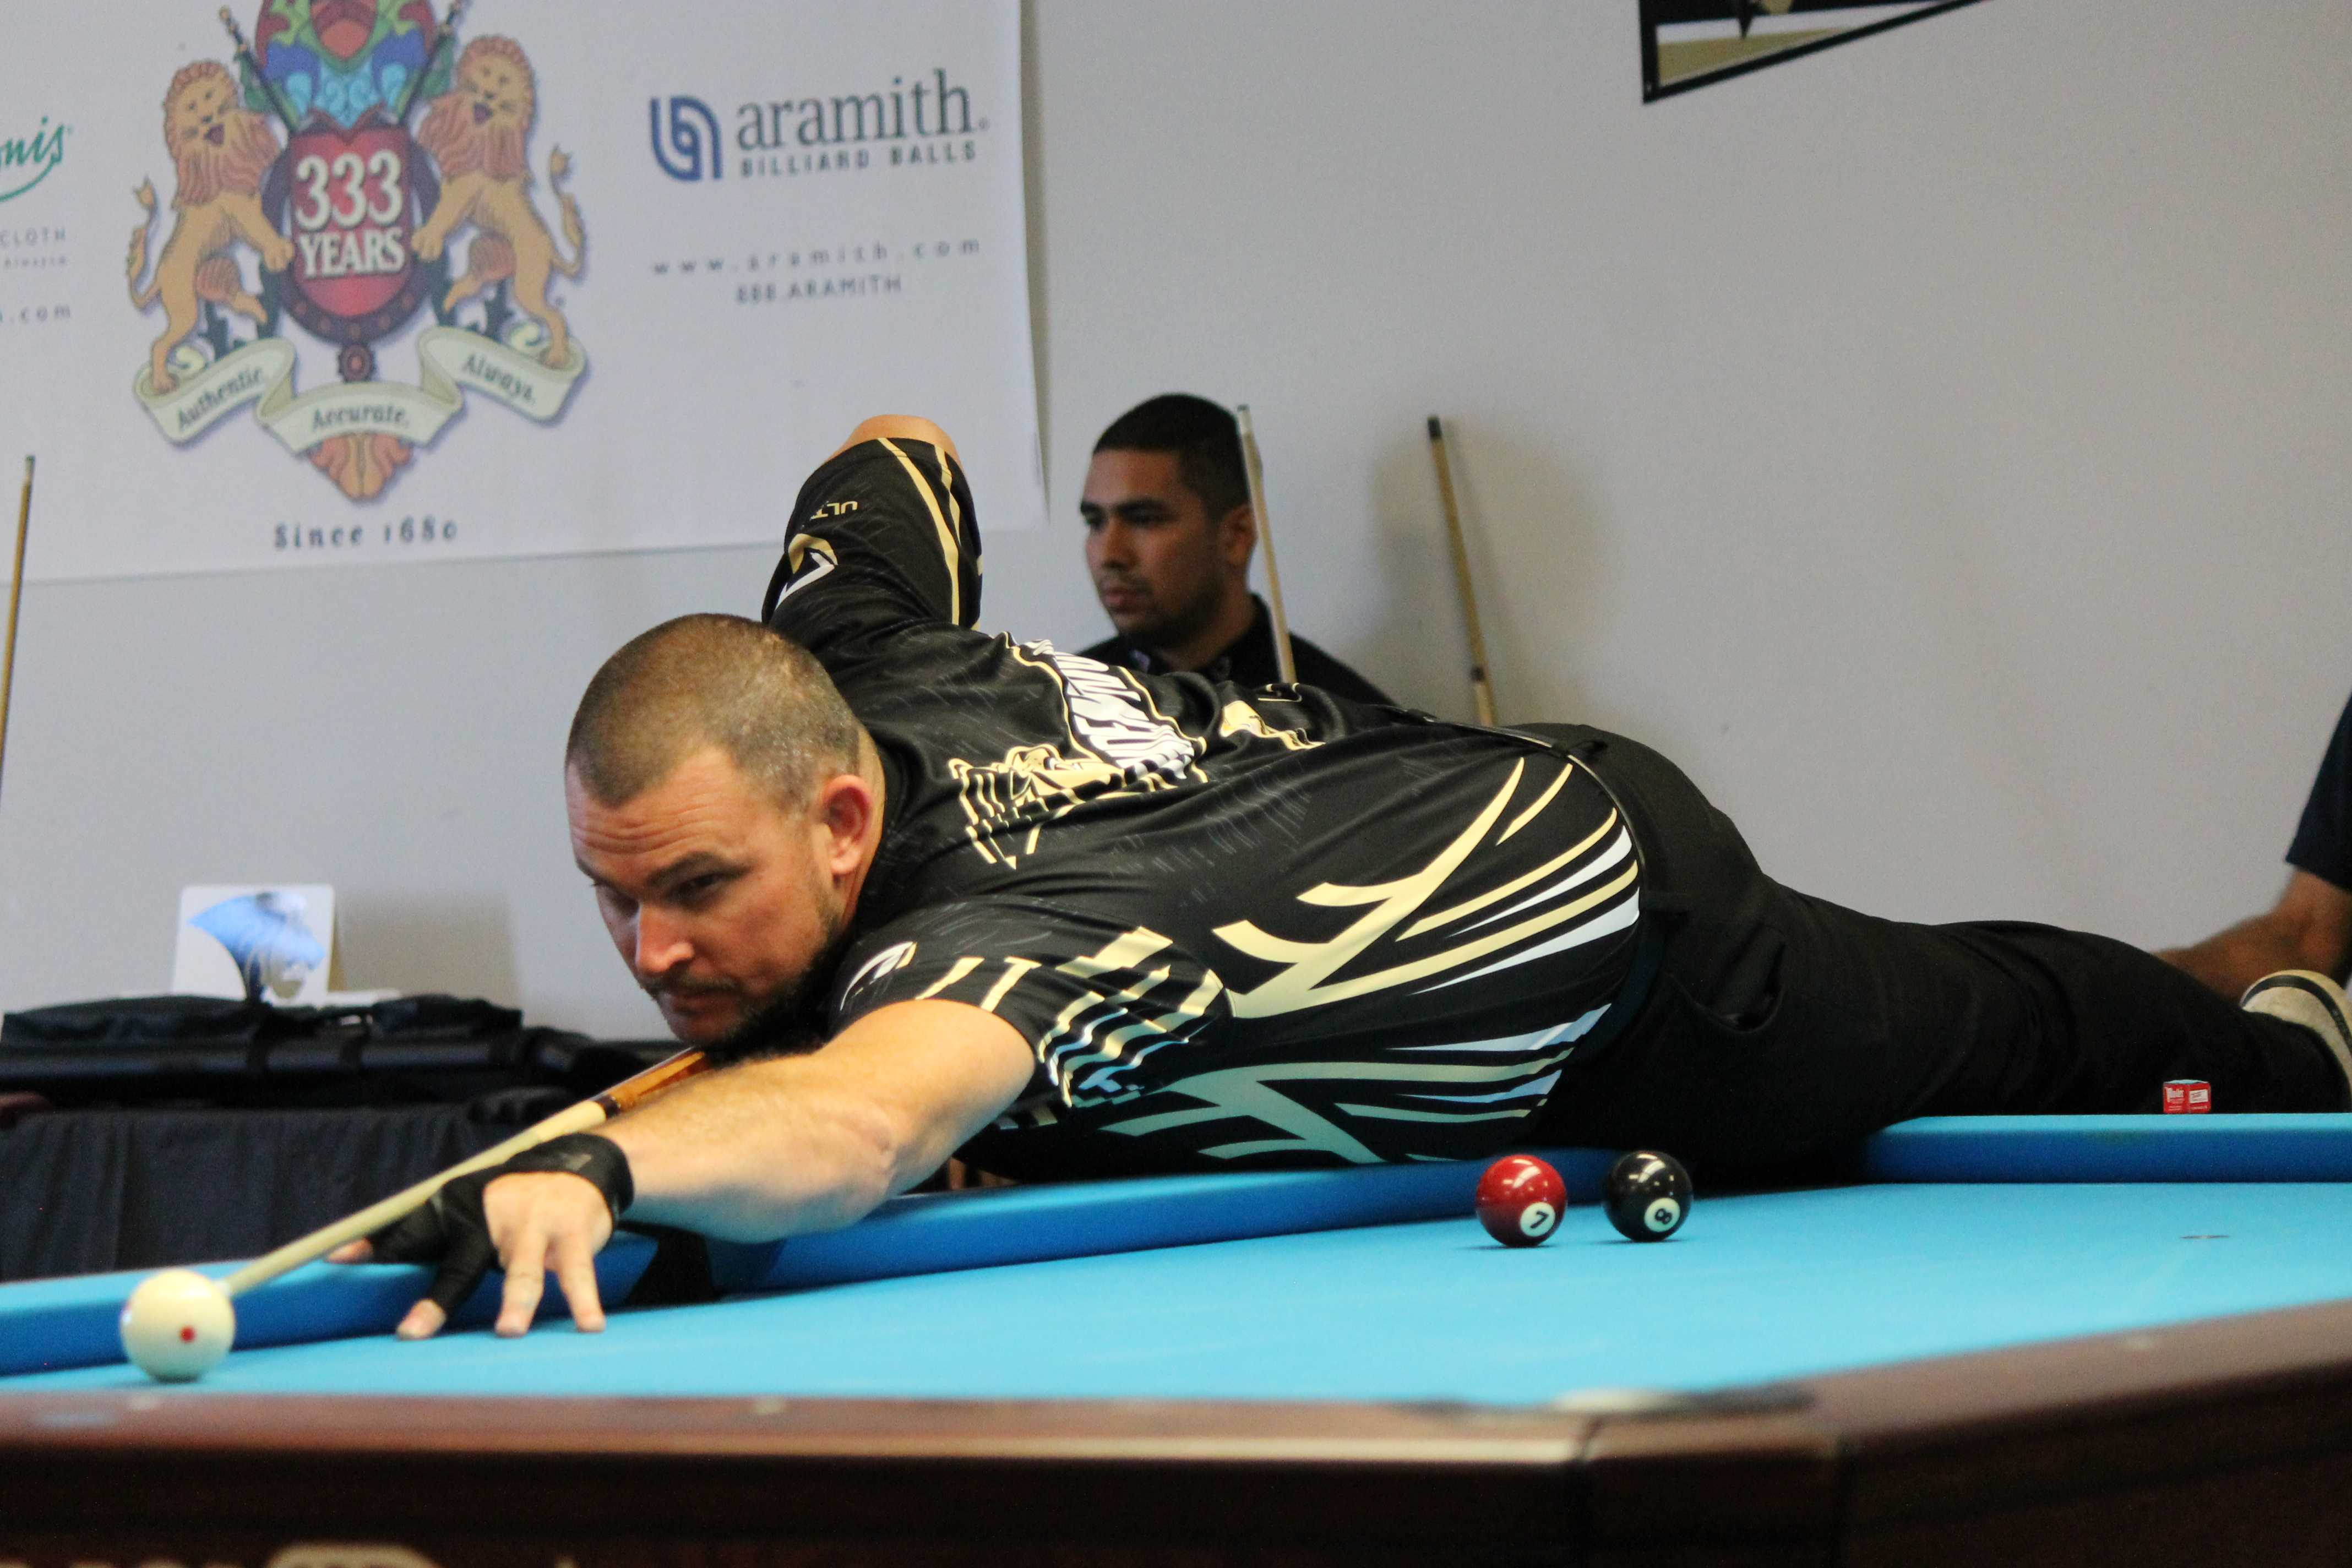 Brandon Jordan stretches across the table during the first set of his two win tournament.  Photo by Walker Van Wey